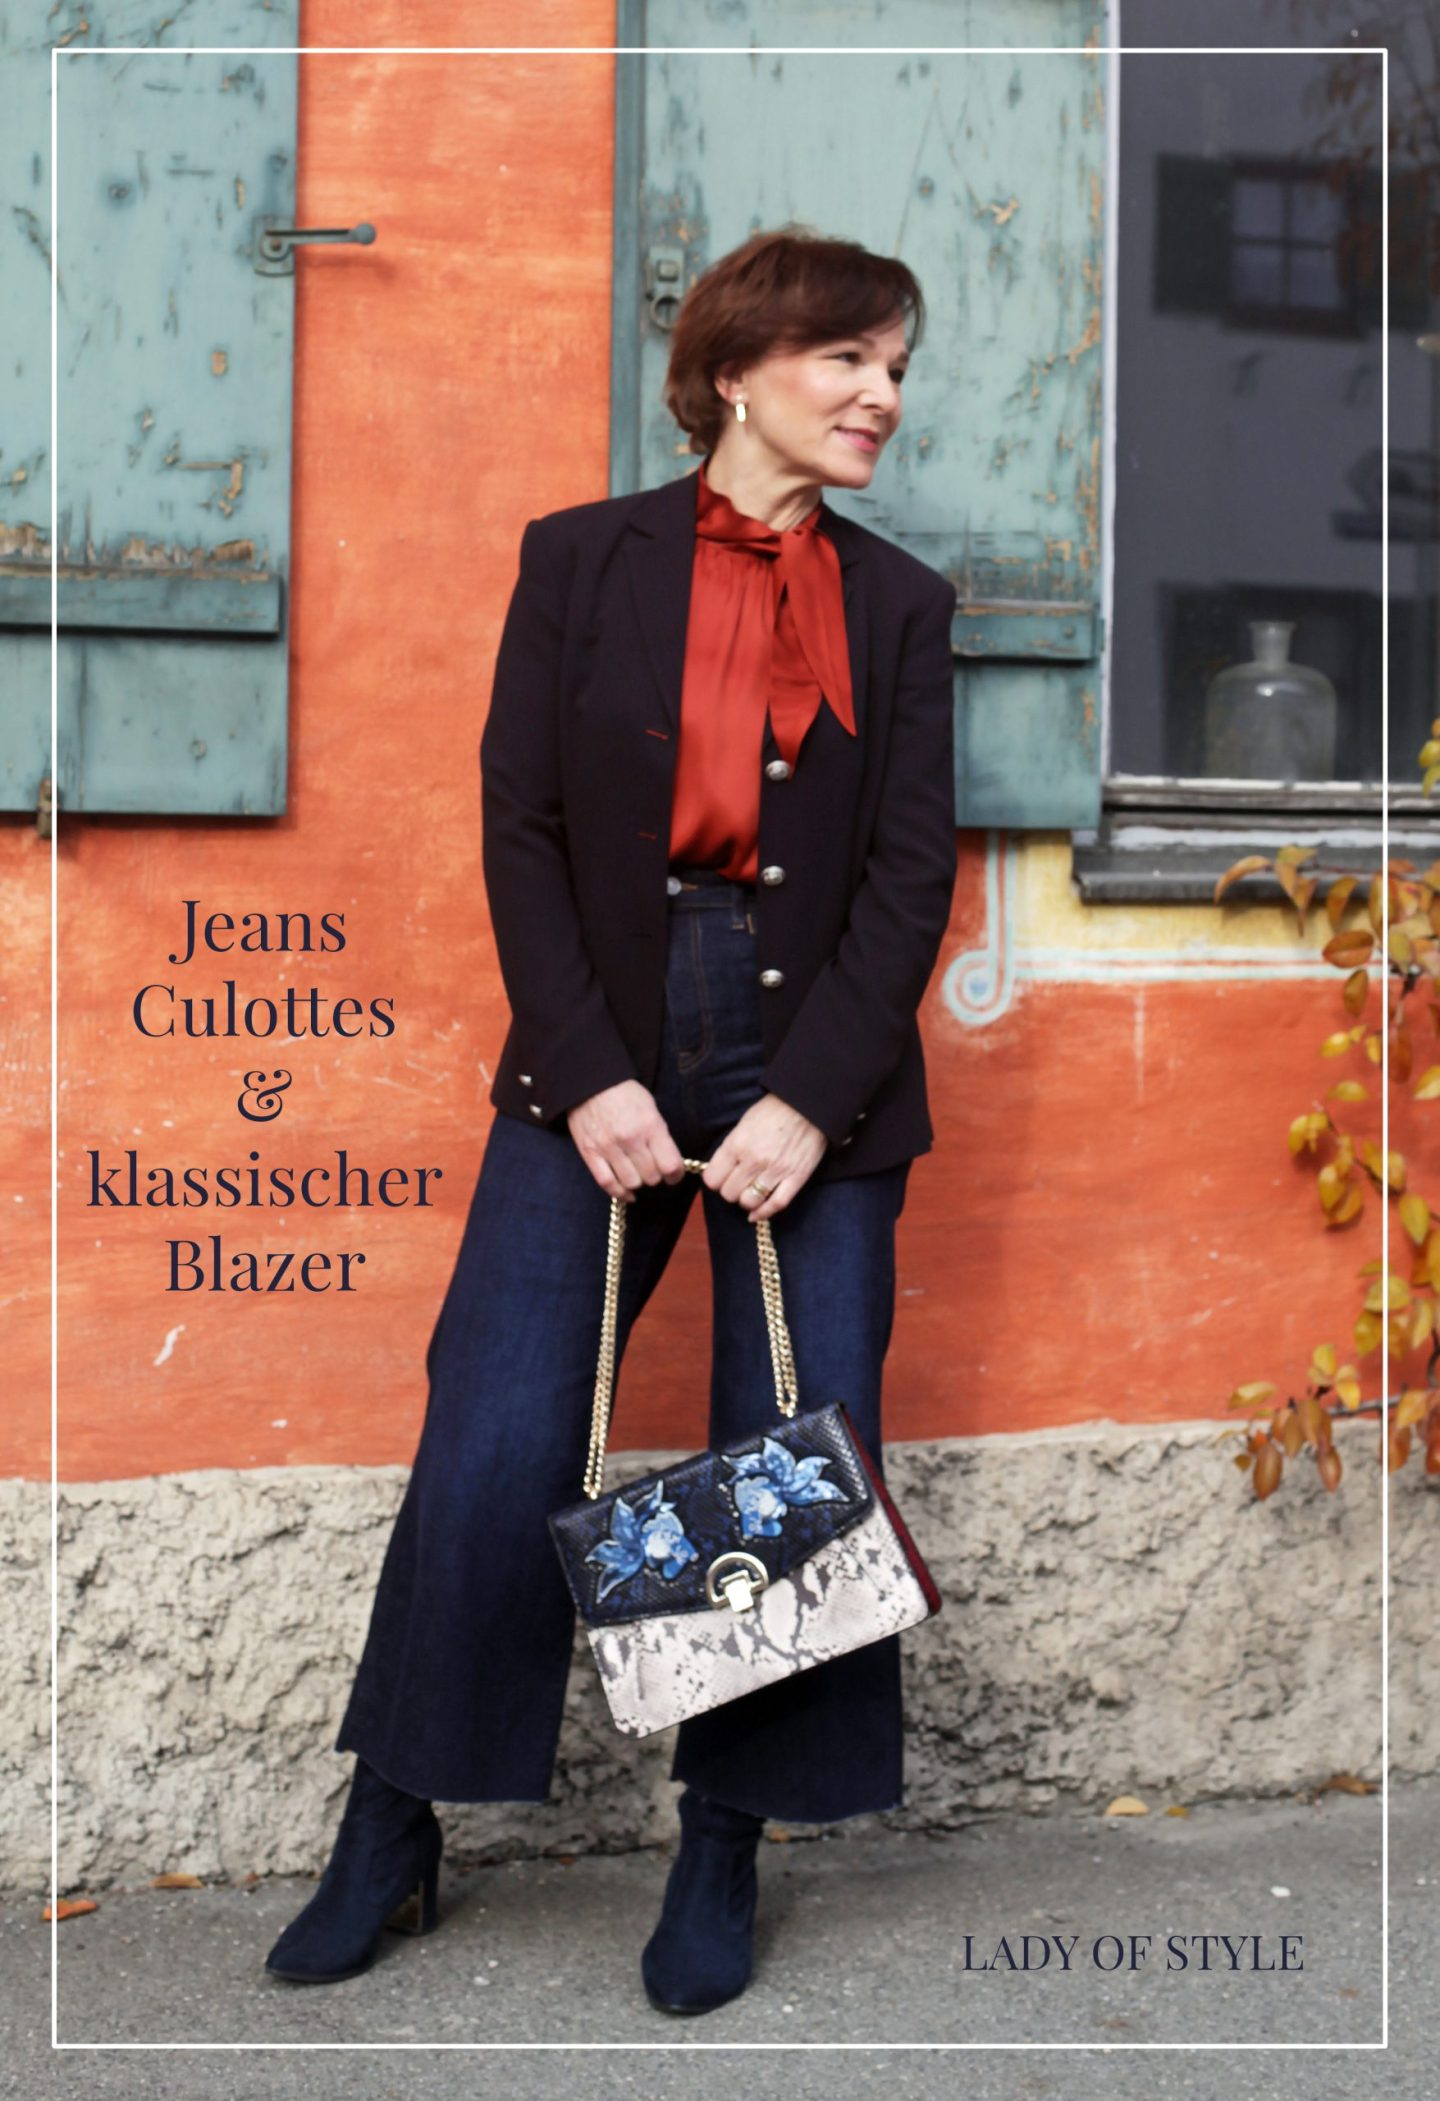 LadyofStyle Jeans Culottes Blazer Business Look